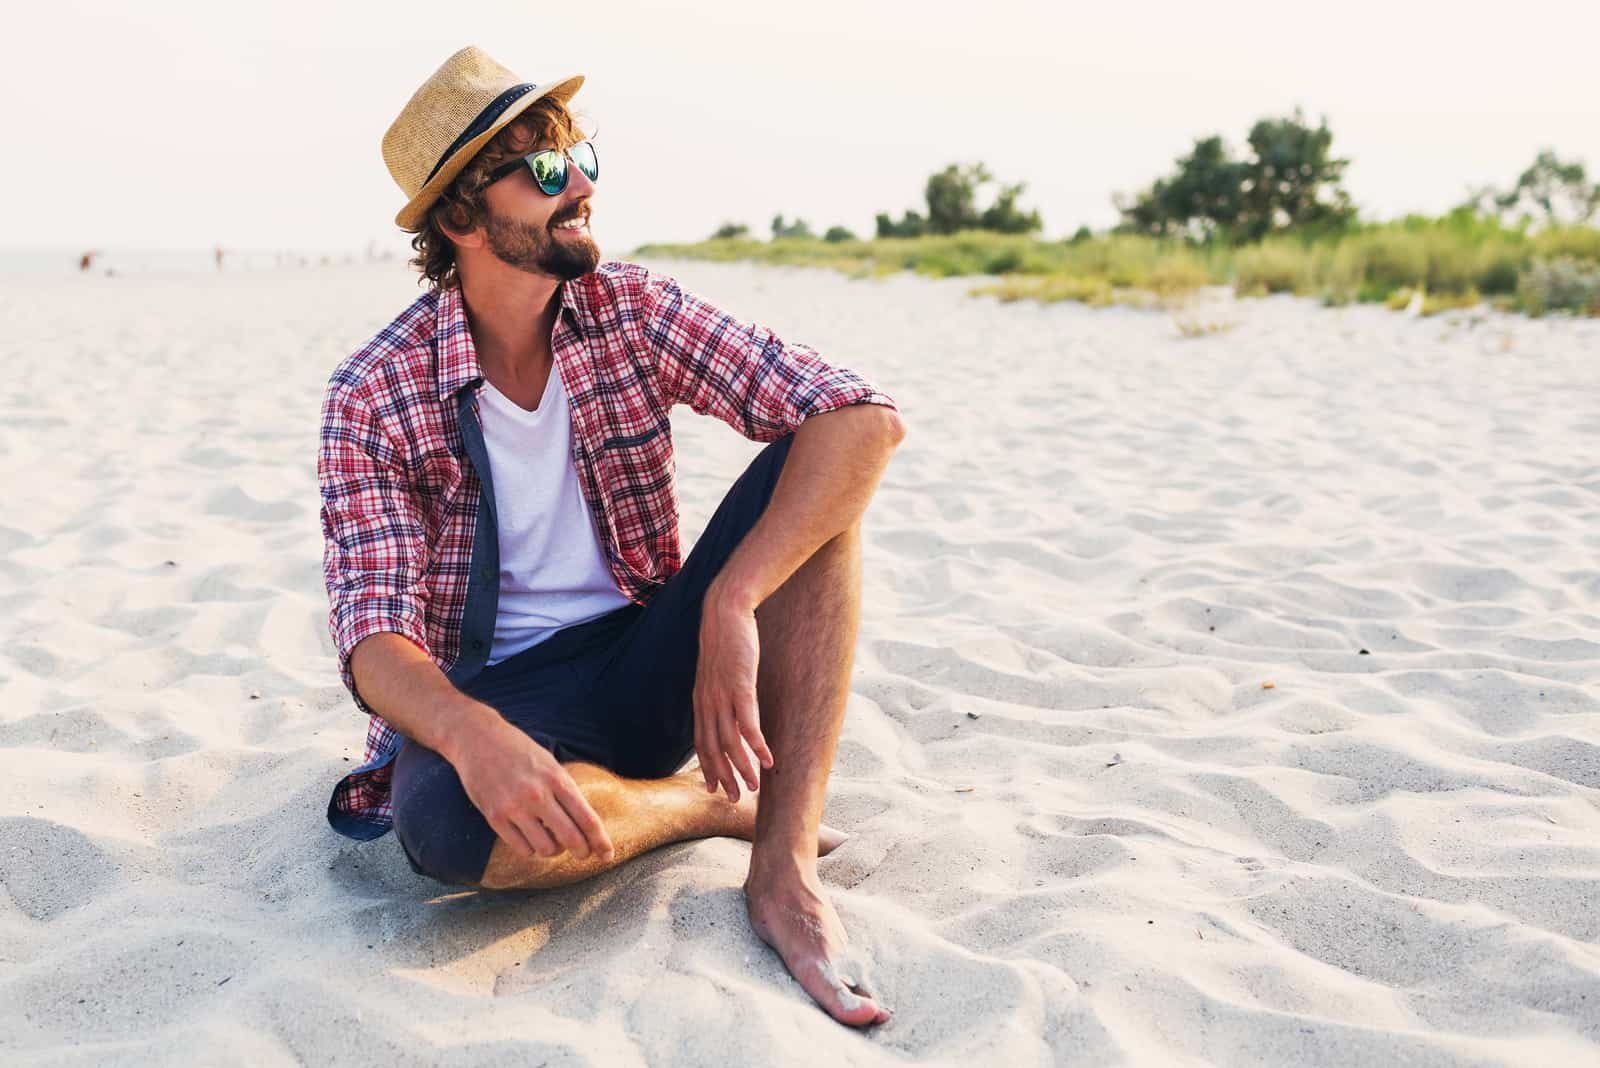 a smiling man with a hat on his head is sitting on the beach